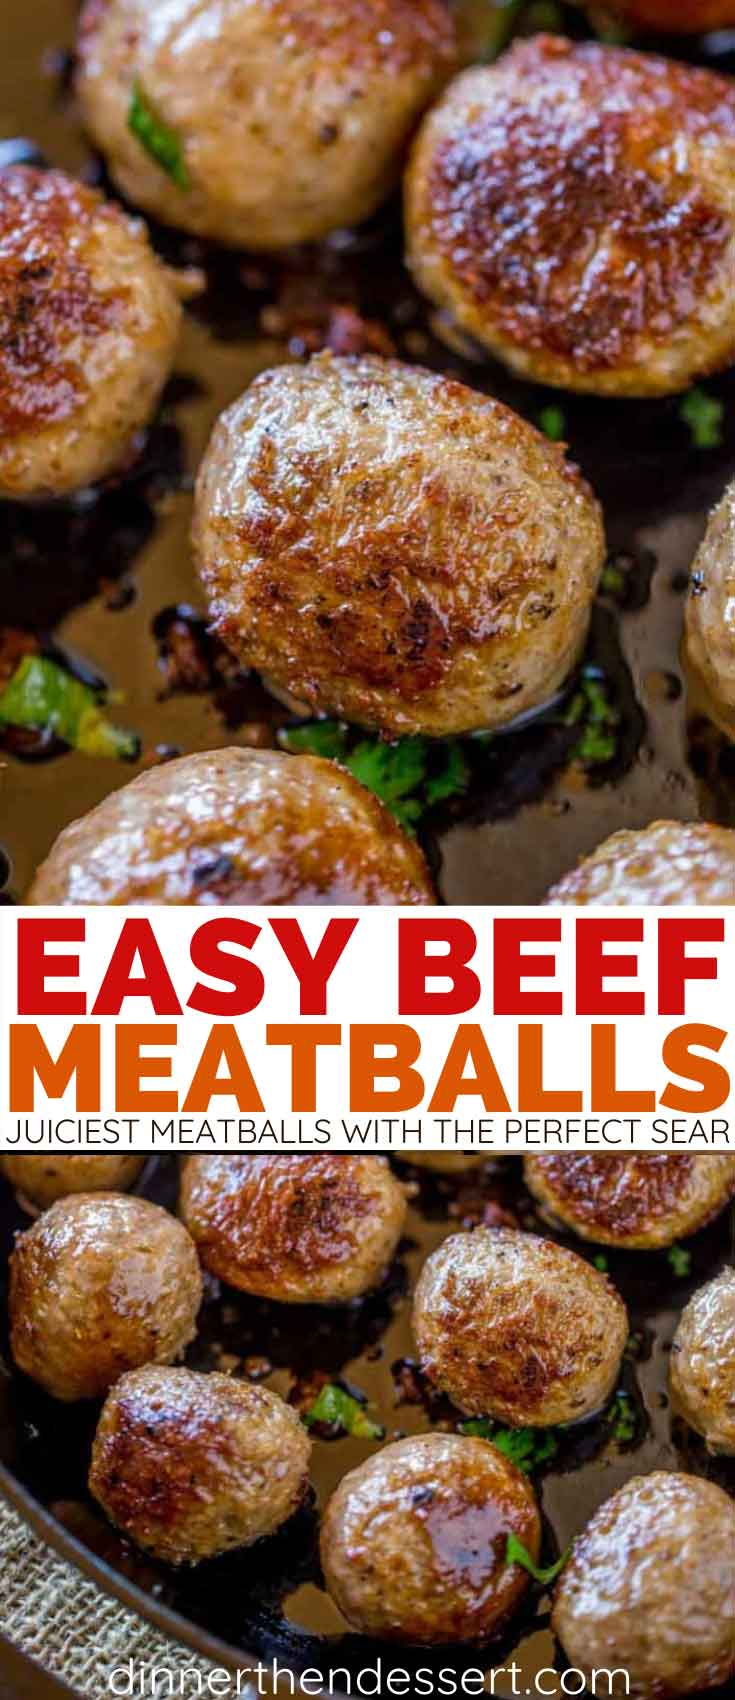 Easy Beef Meatballs collage